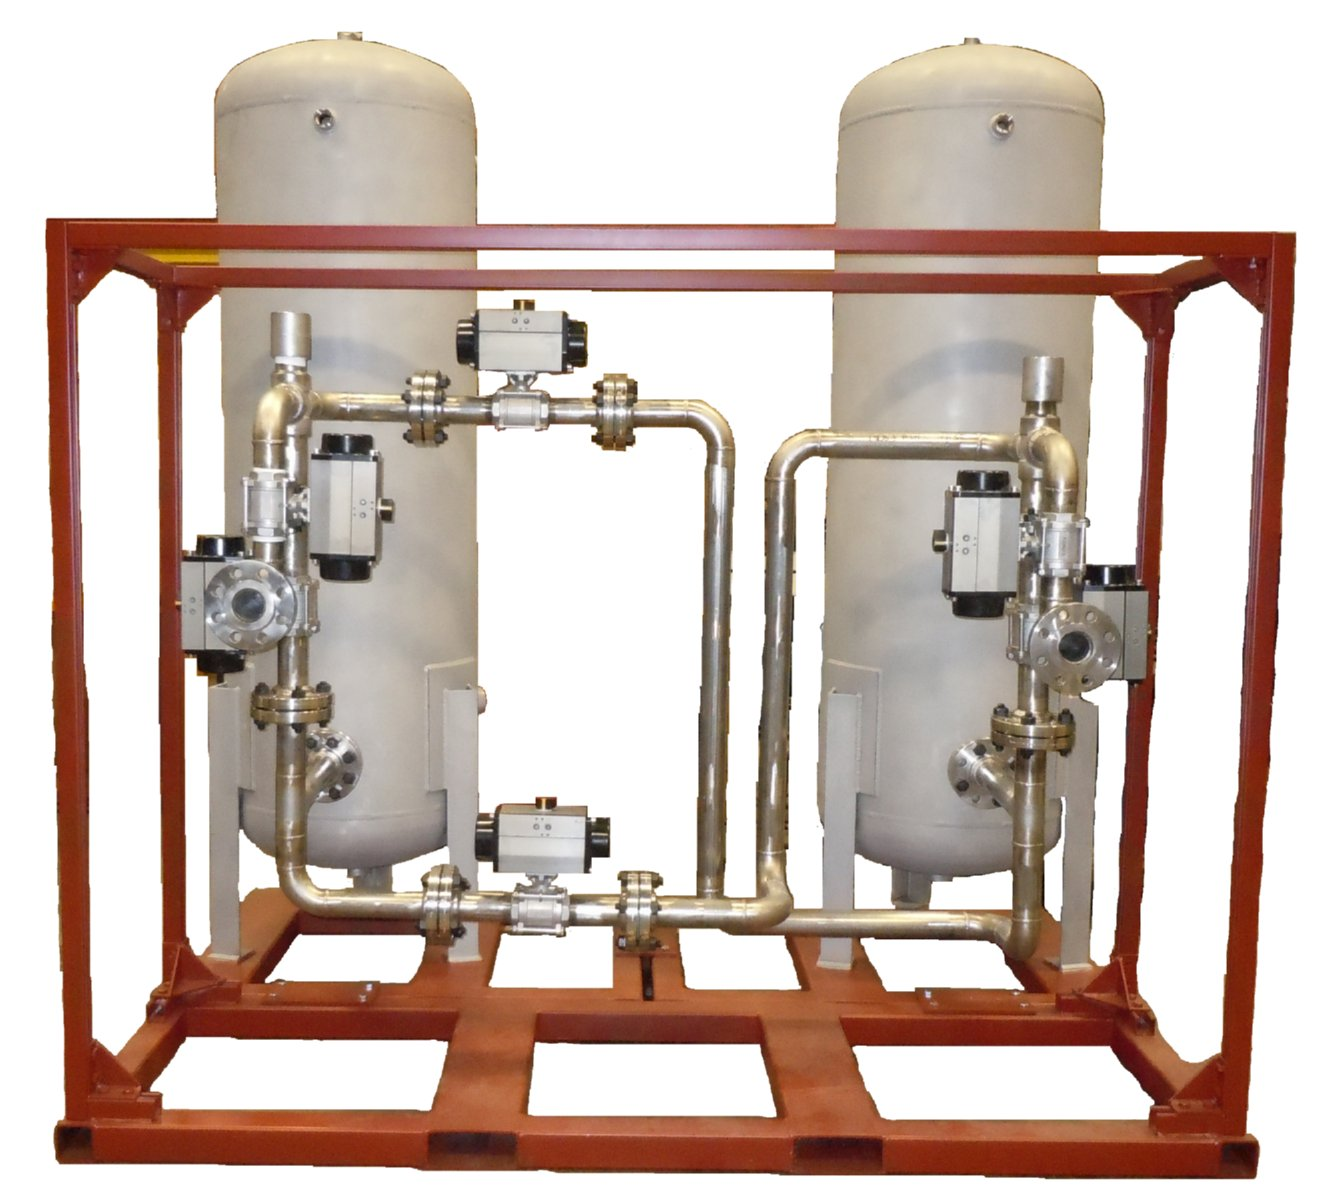 ASME Pressure Vessel Skid Assembly